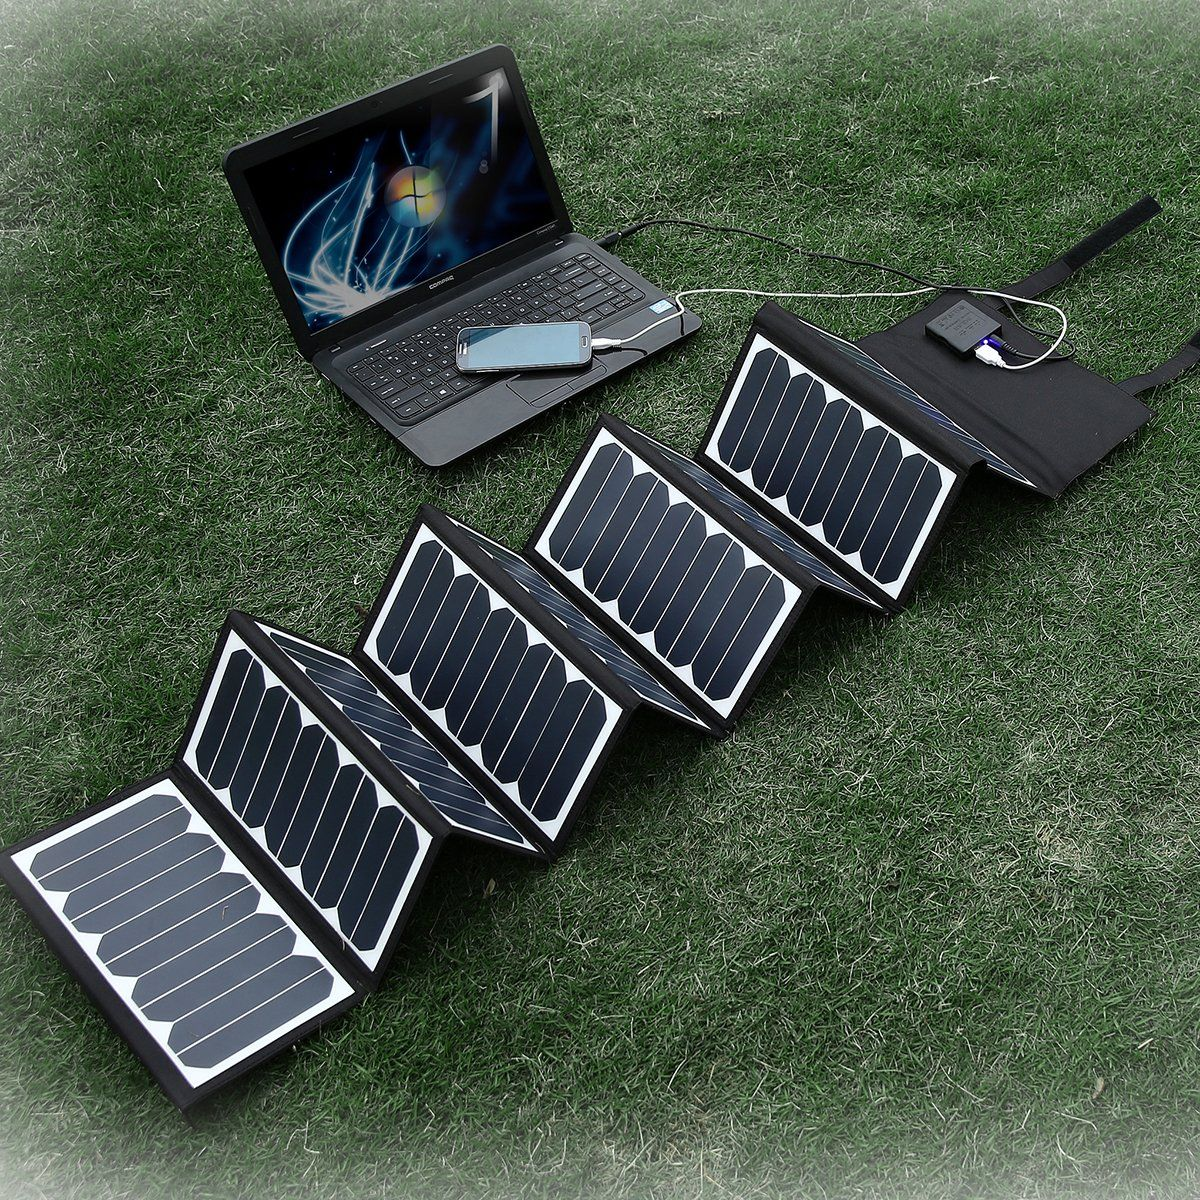 New Release Poweradd Amp Trade High Efficient 60w Foldable Solar Panel Portable Solar Charger Usb Port 18v Solar Panel Charger Solar Panels Solar Charger